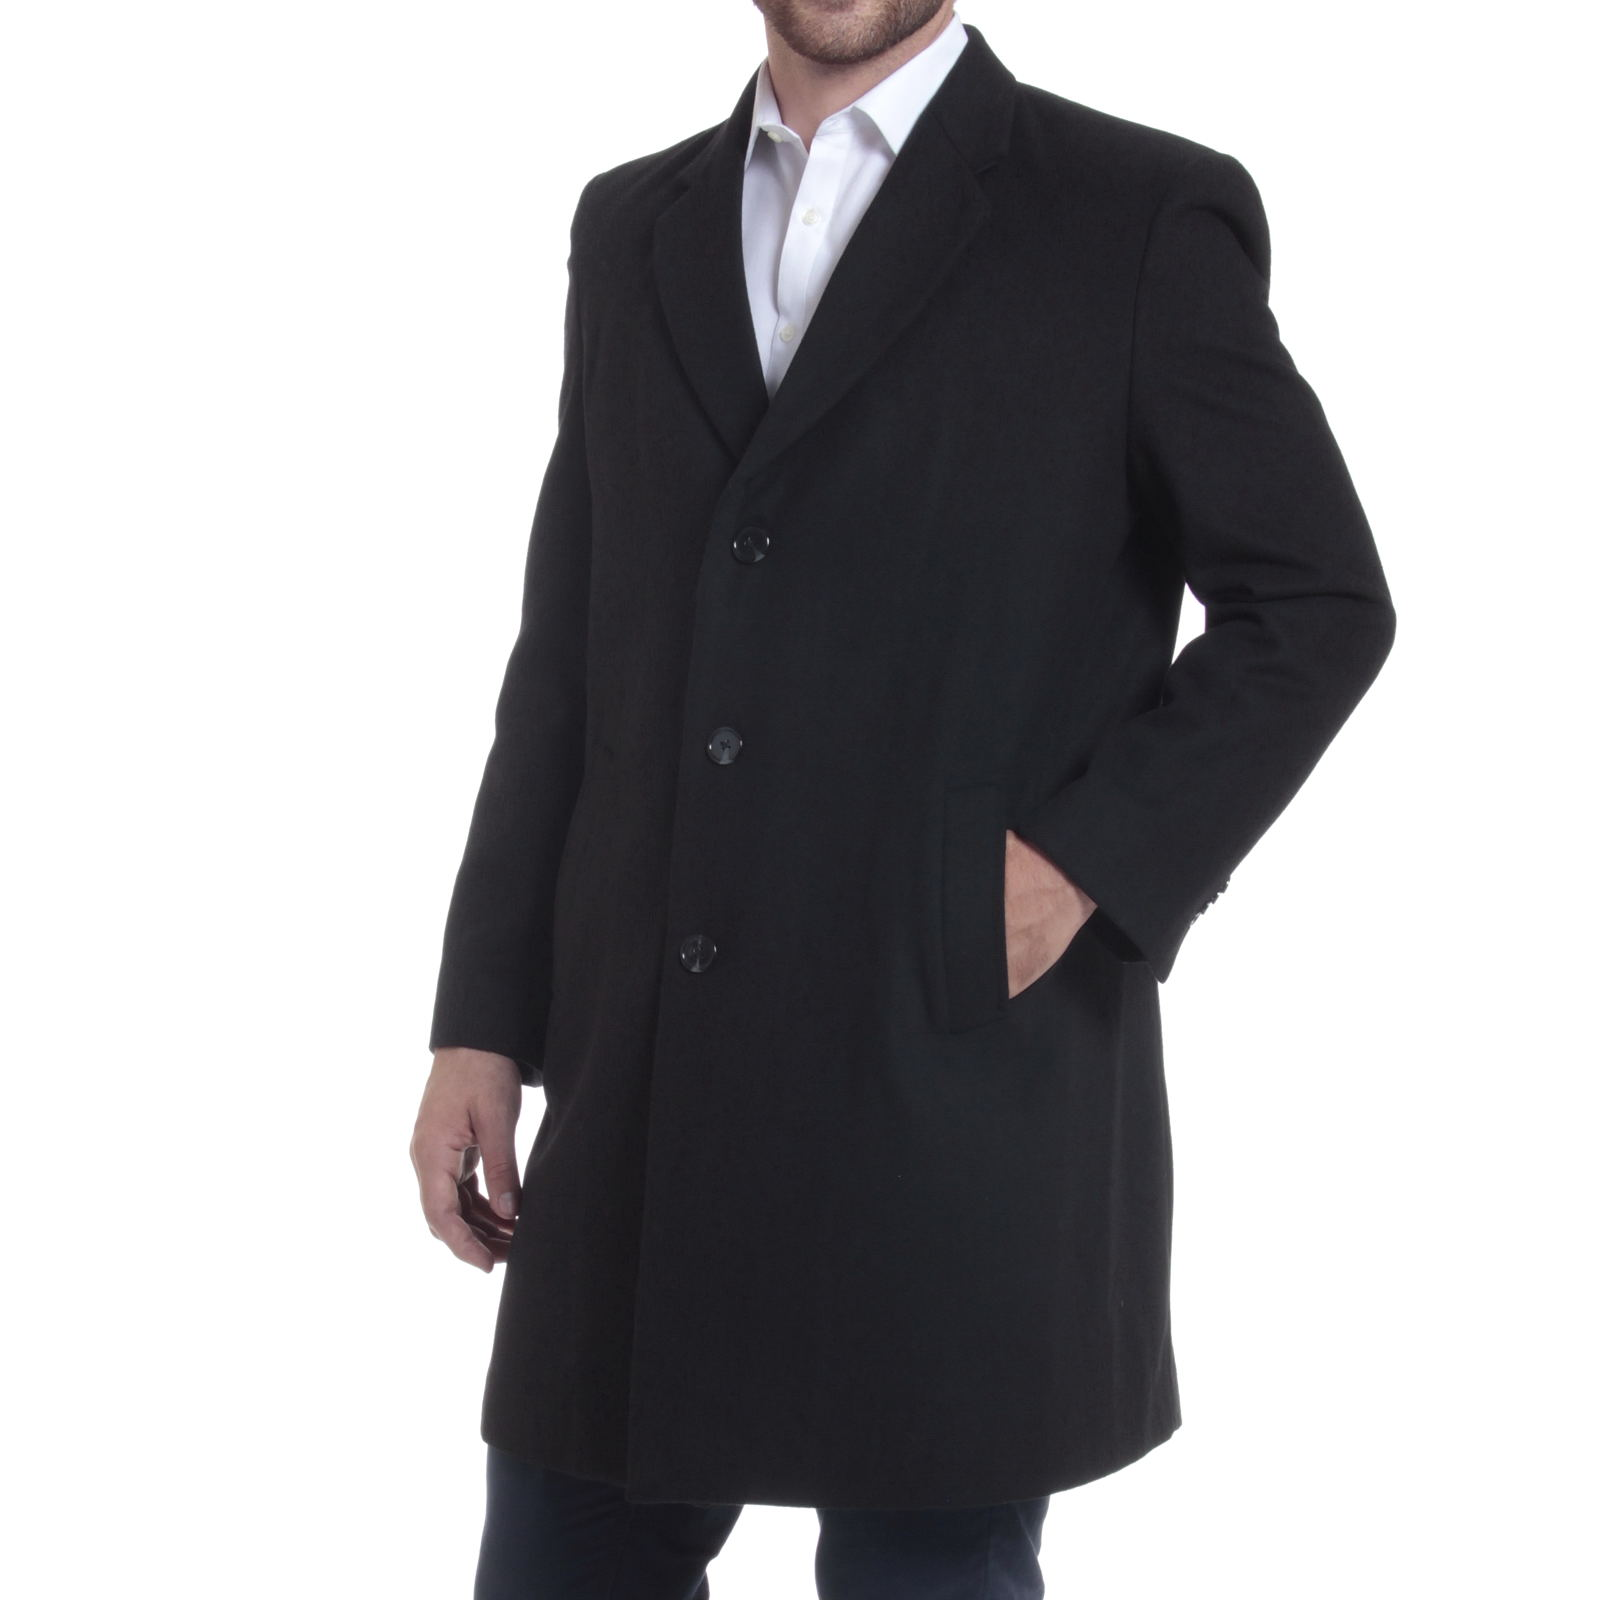 alpine swiss luke wool mens tailored 37 walker jacket top coat car coat overcoat. Black Bedroom Furniture Sets. Home Design Ideas